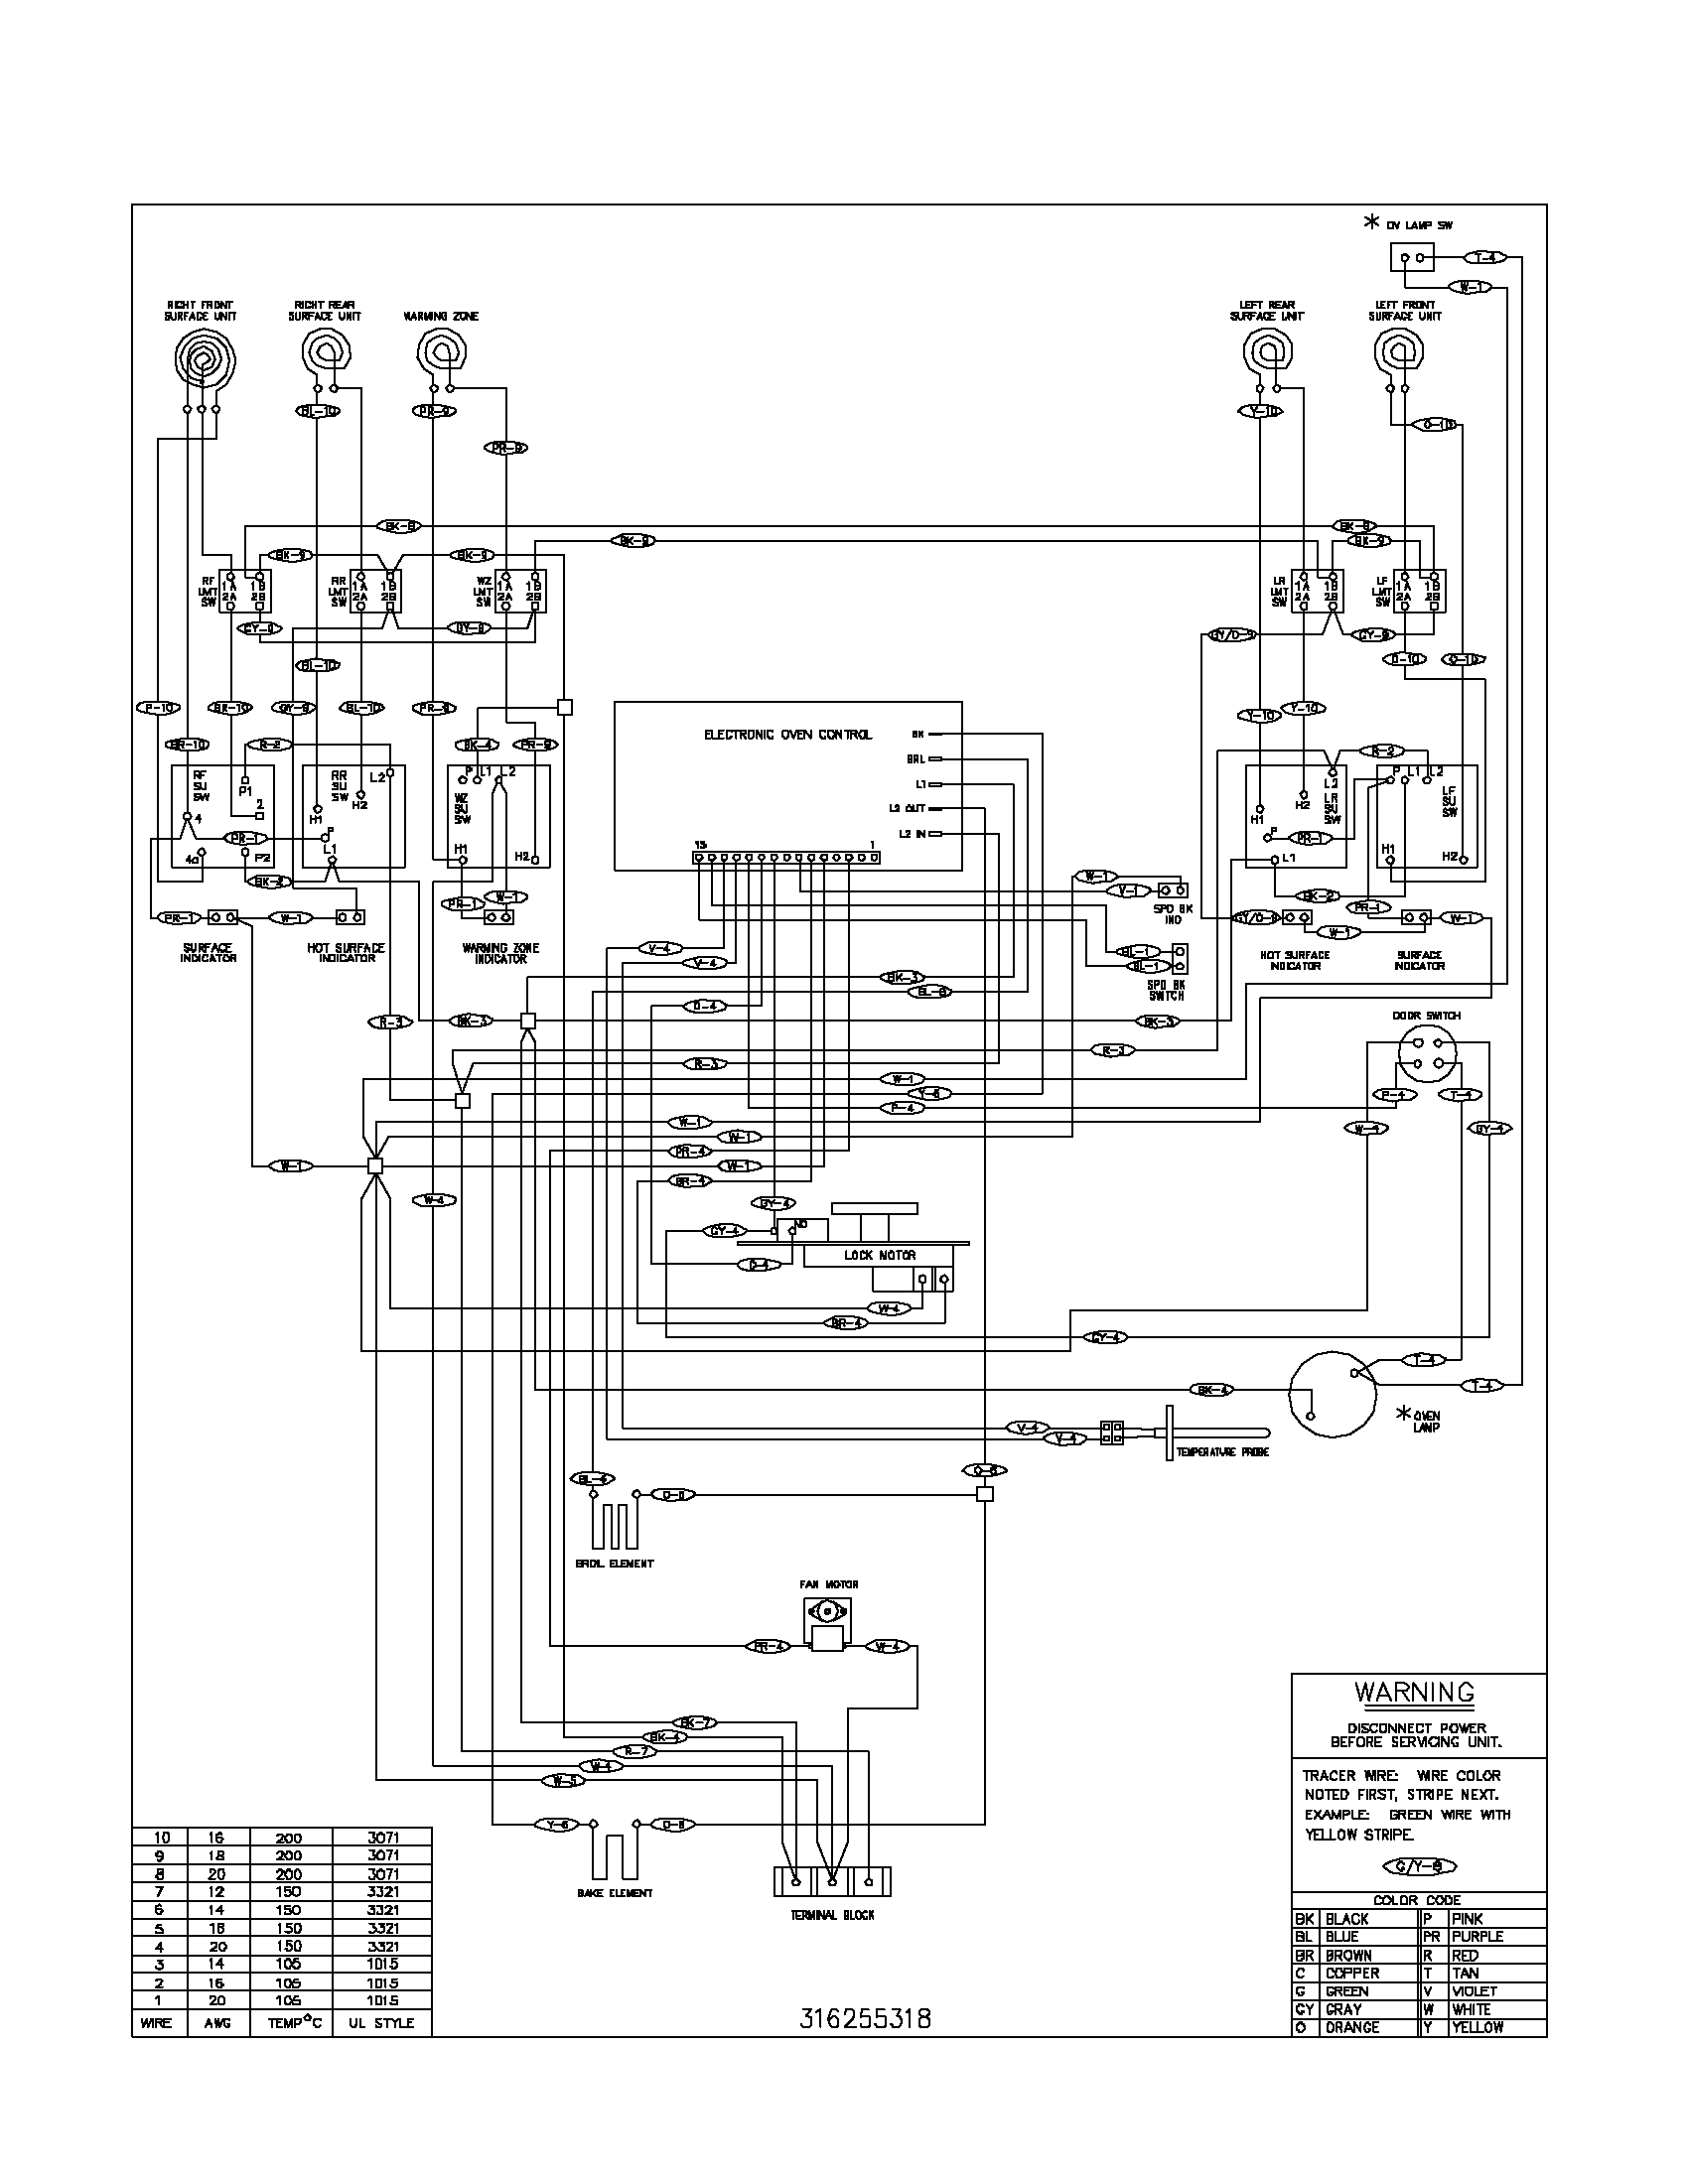 Frigidaire Oven Wiring Diagram Block Explanation Freezer Glef378cqb Electric Range Timer Stove Clocks And Appliance Timers Fefl63fsb